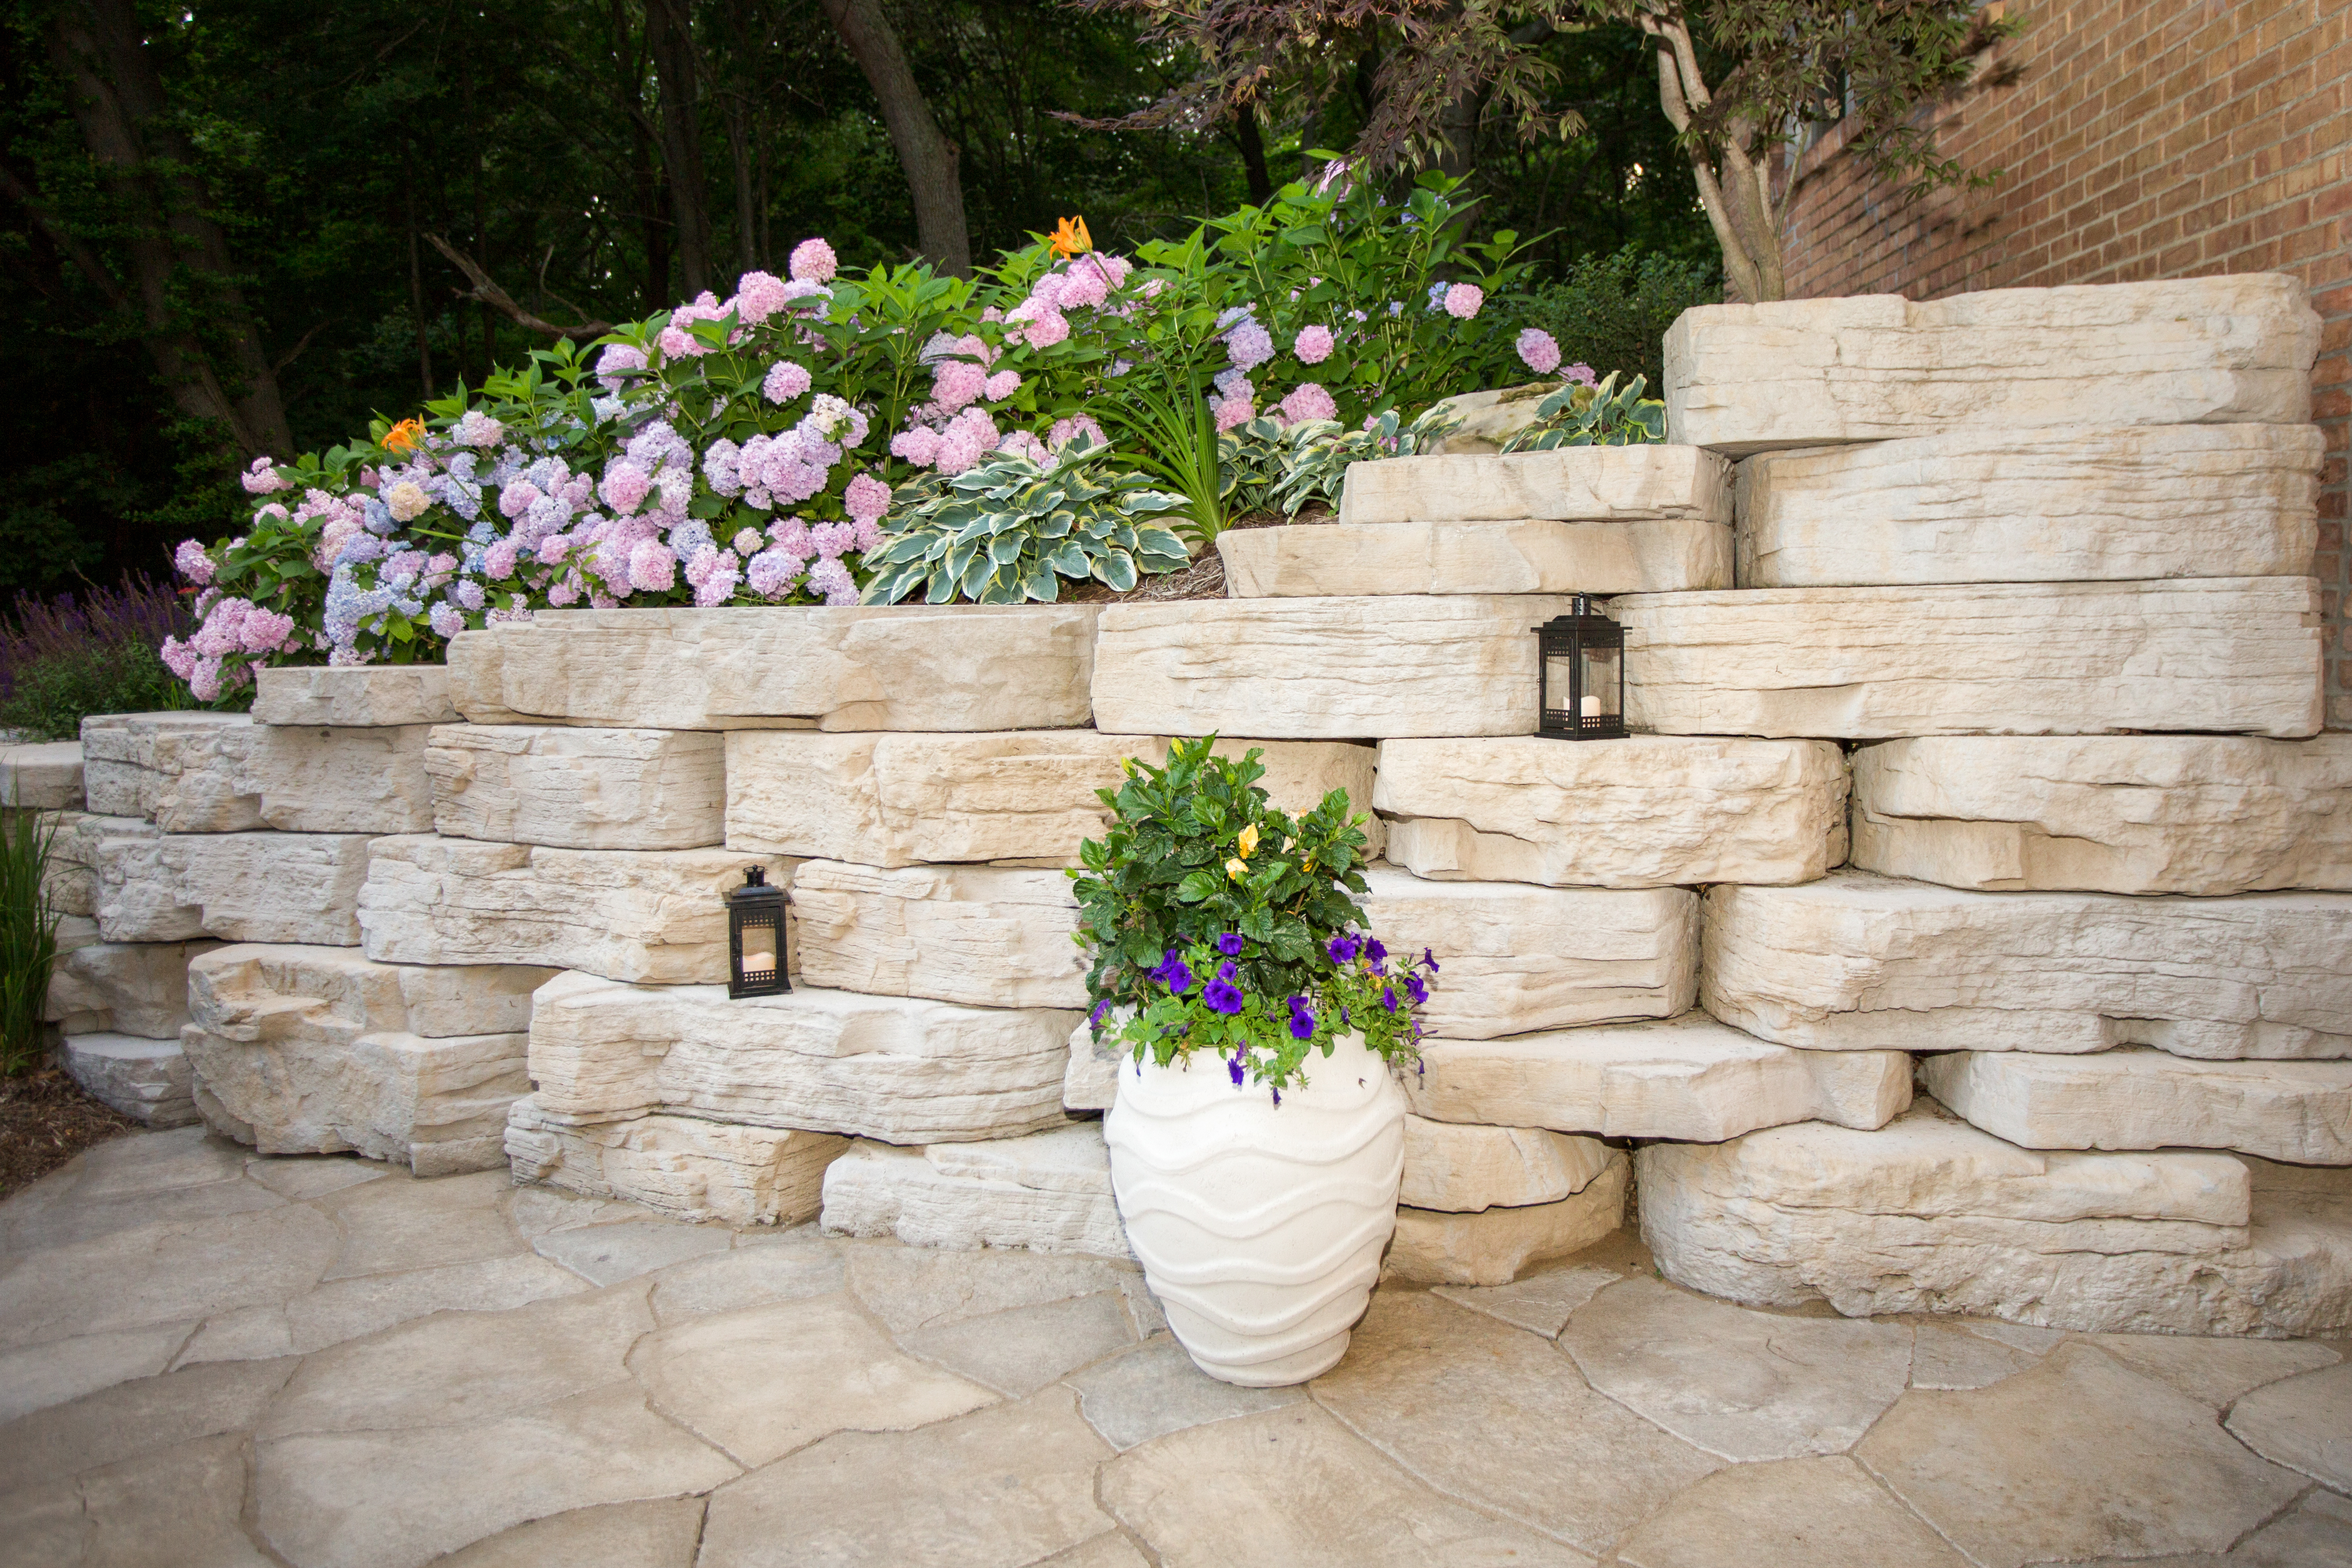 Create a nook to showcase your green thumb with Rosetta's Outcropping Collection. Products shown: Outcropping and Grand Flagstone